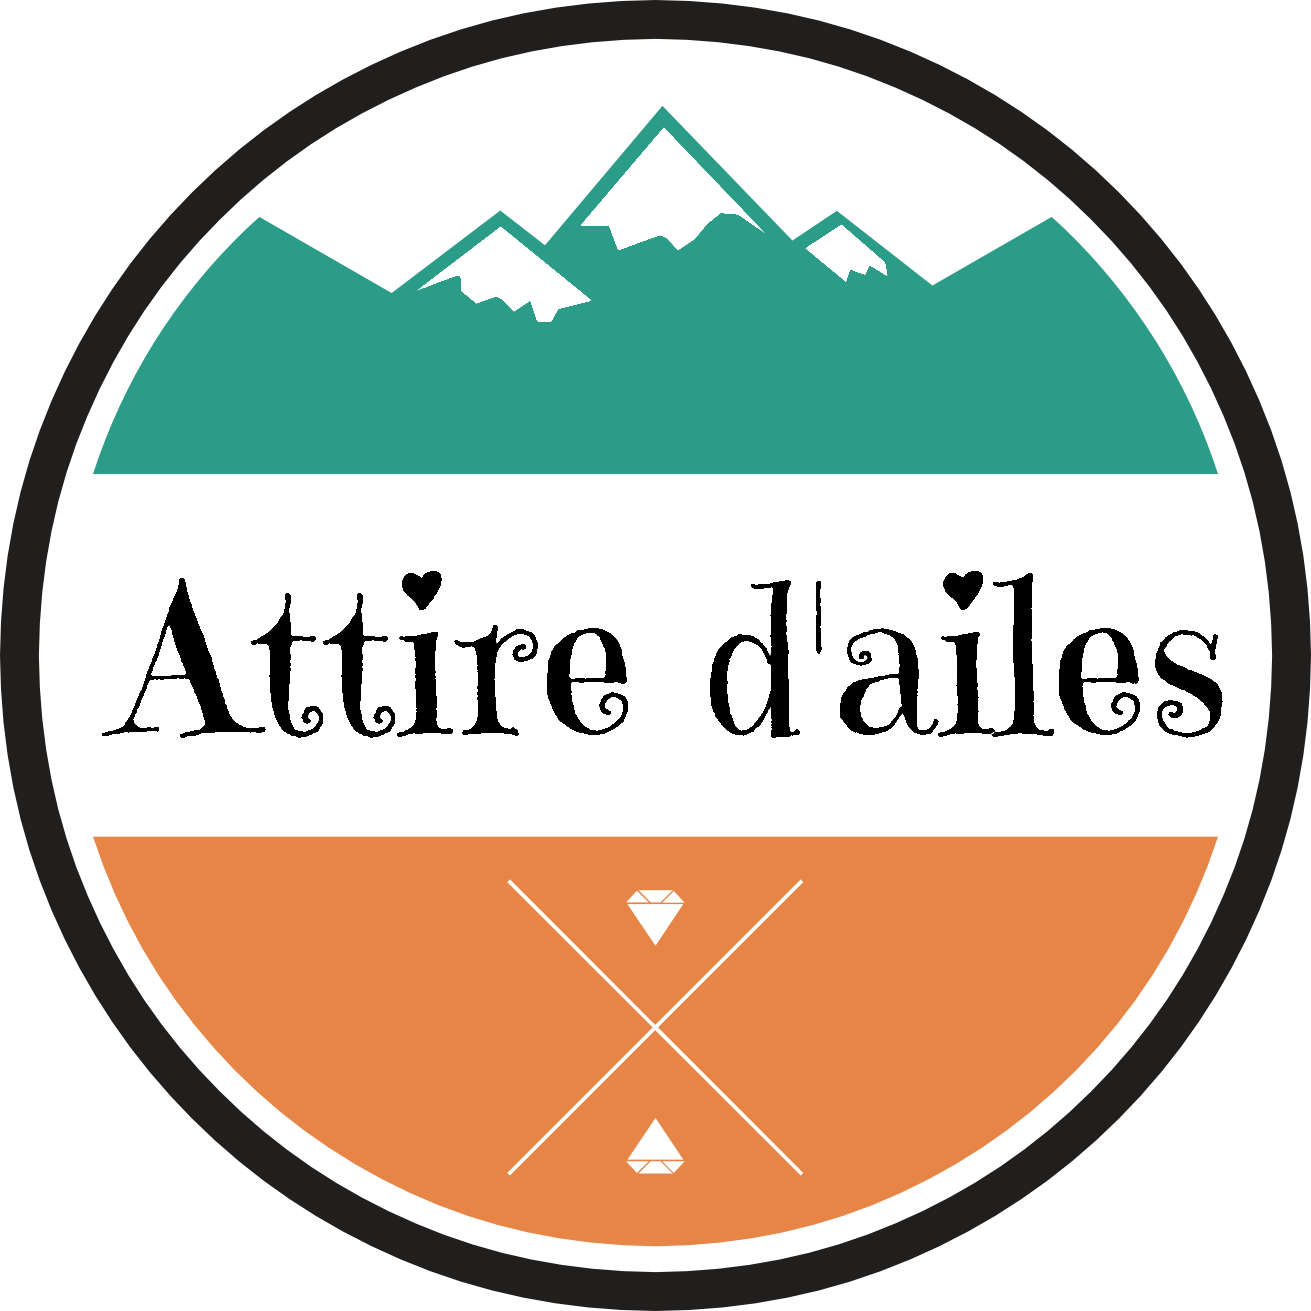 image_thumb_ATTIRE D'AILES